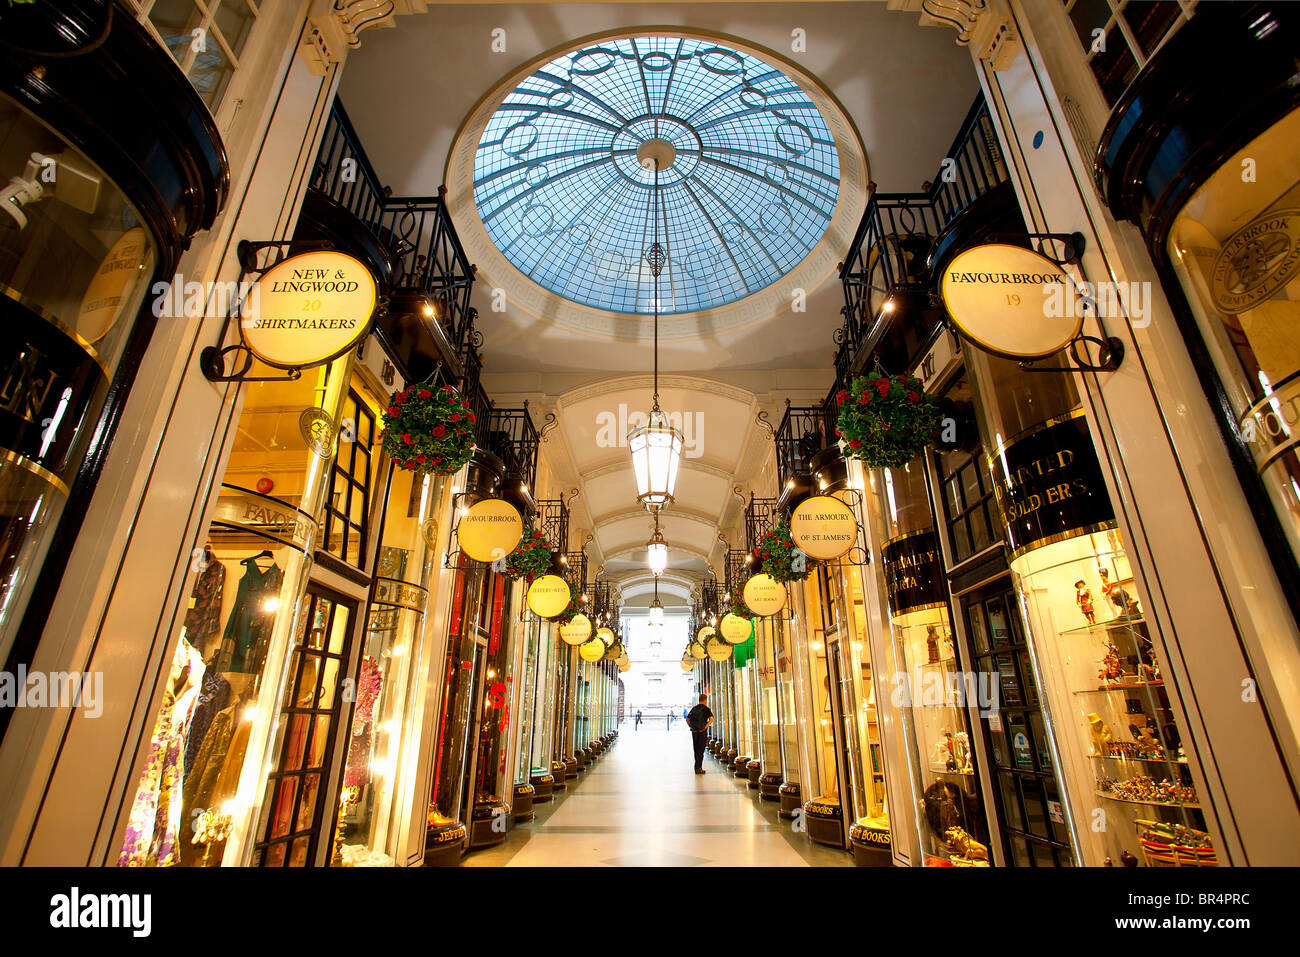 Europe, United Kingdom, England, London, Mayfair district, Piccadilly Arcade Stock Photo